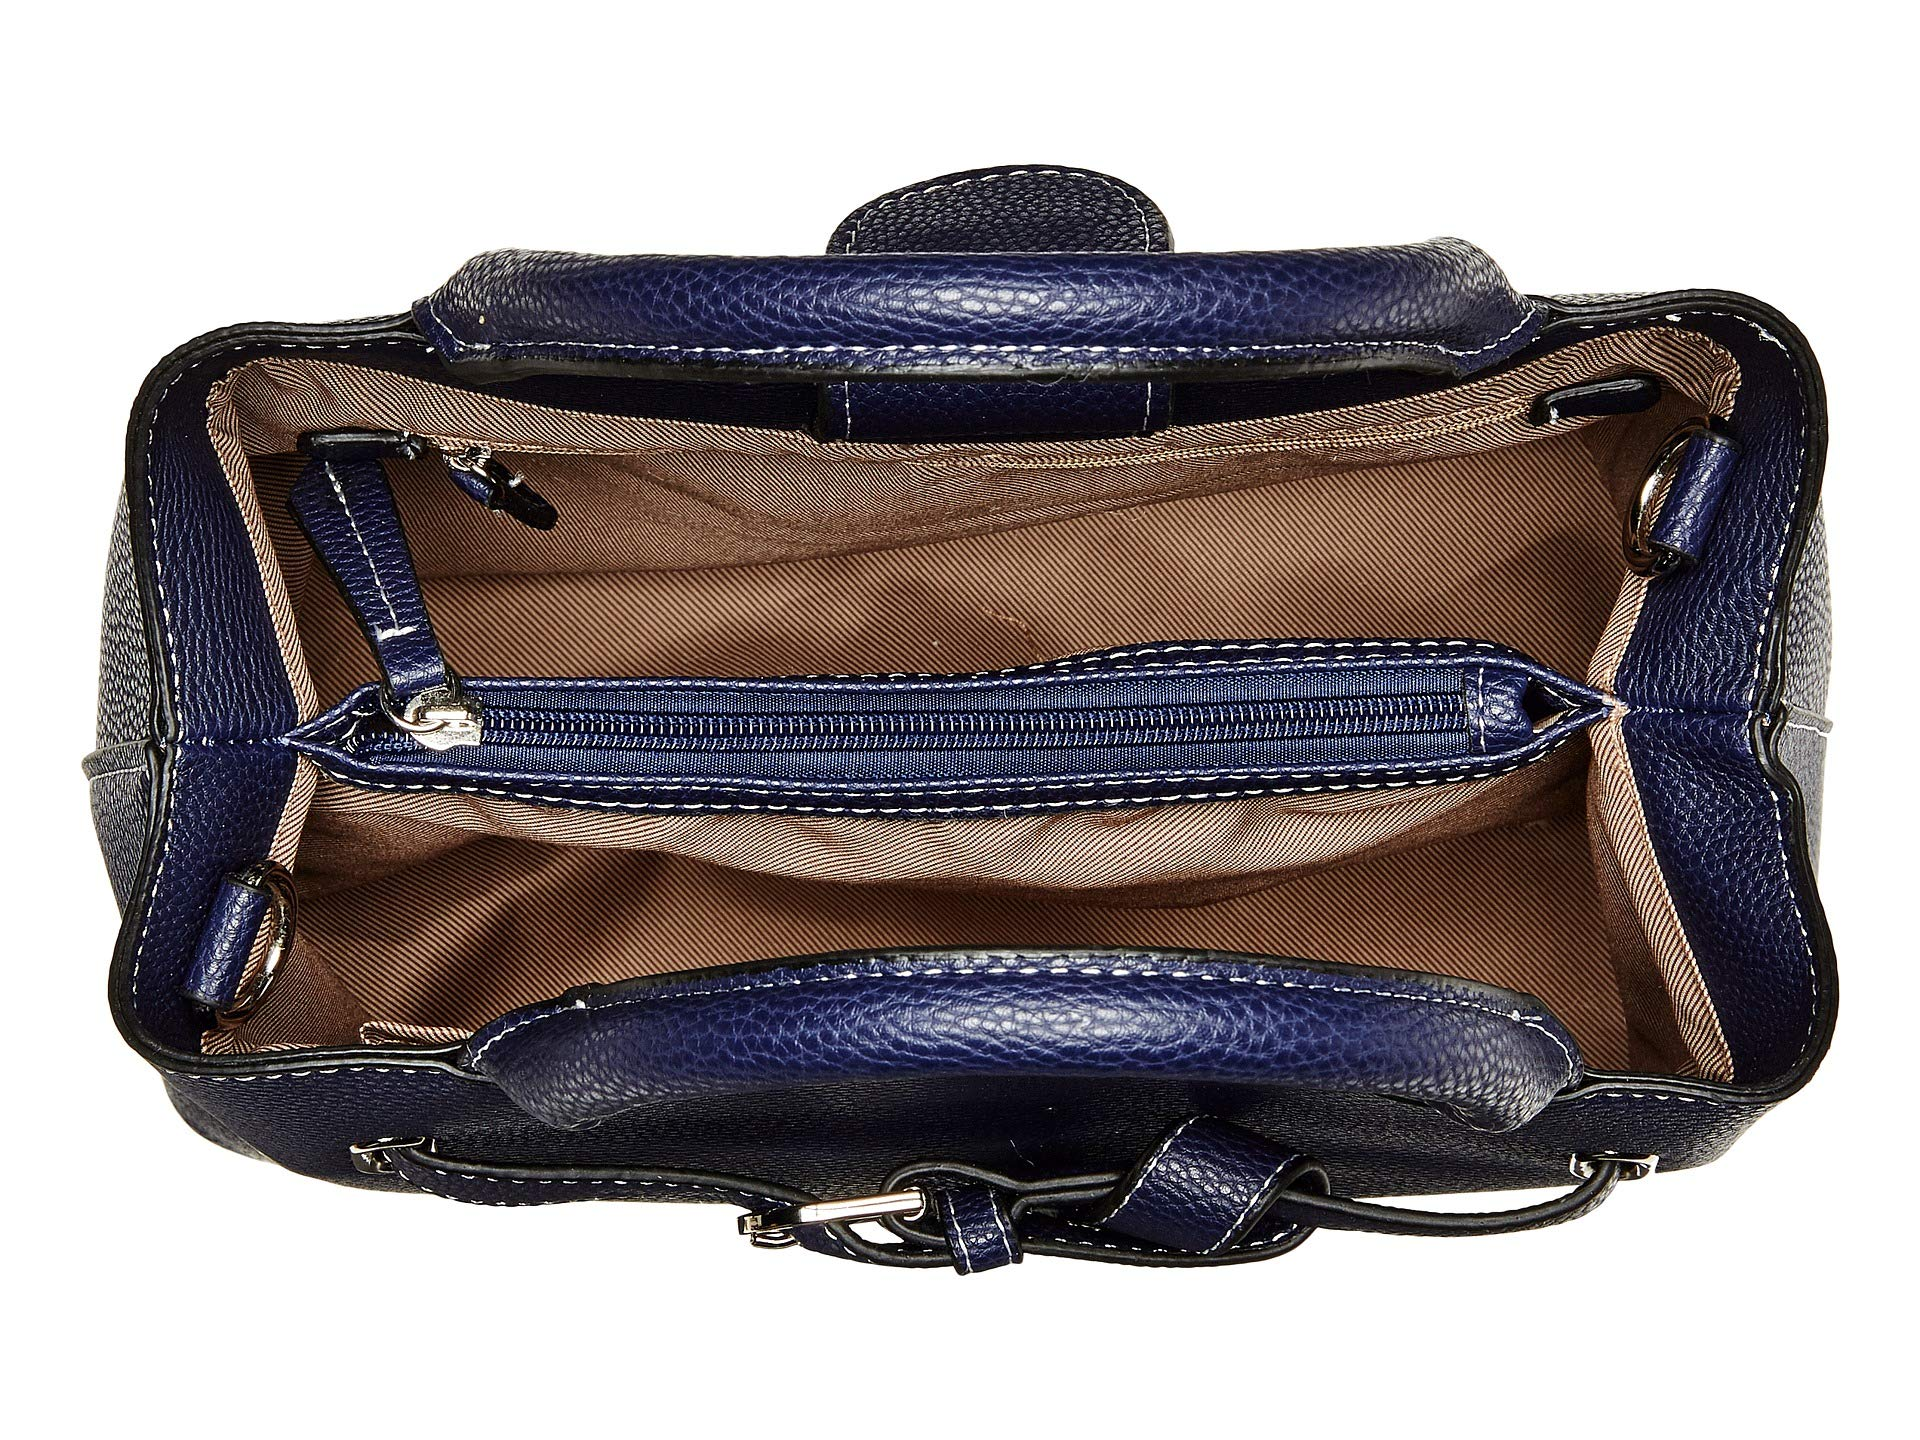 Triple Navy Satchel Ruby London Fog 6xnY60w